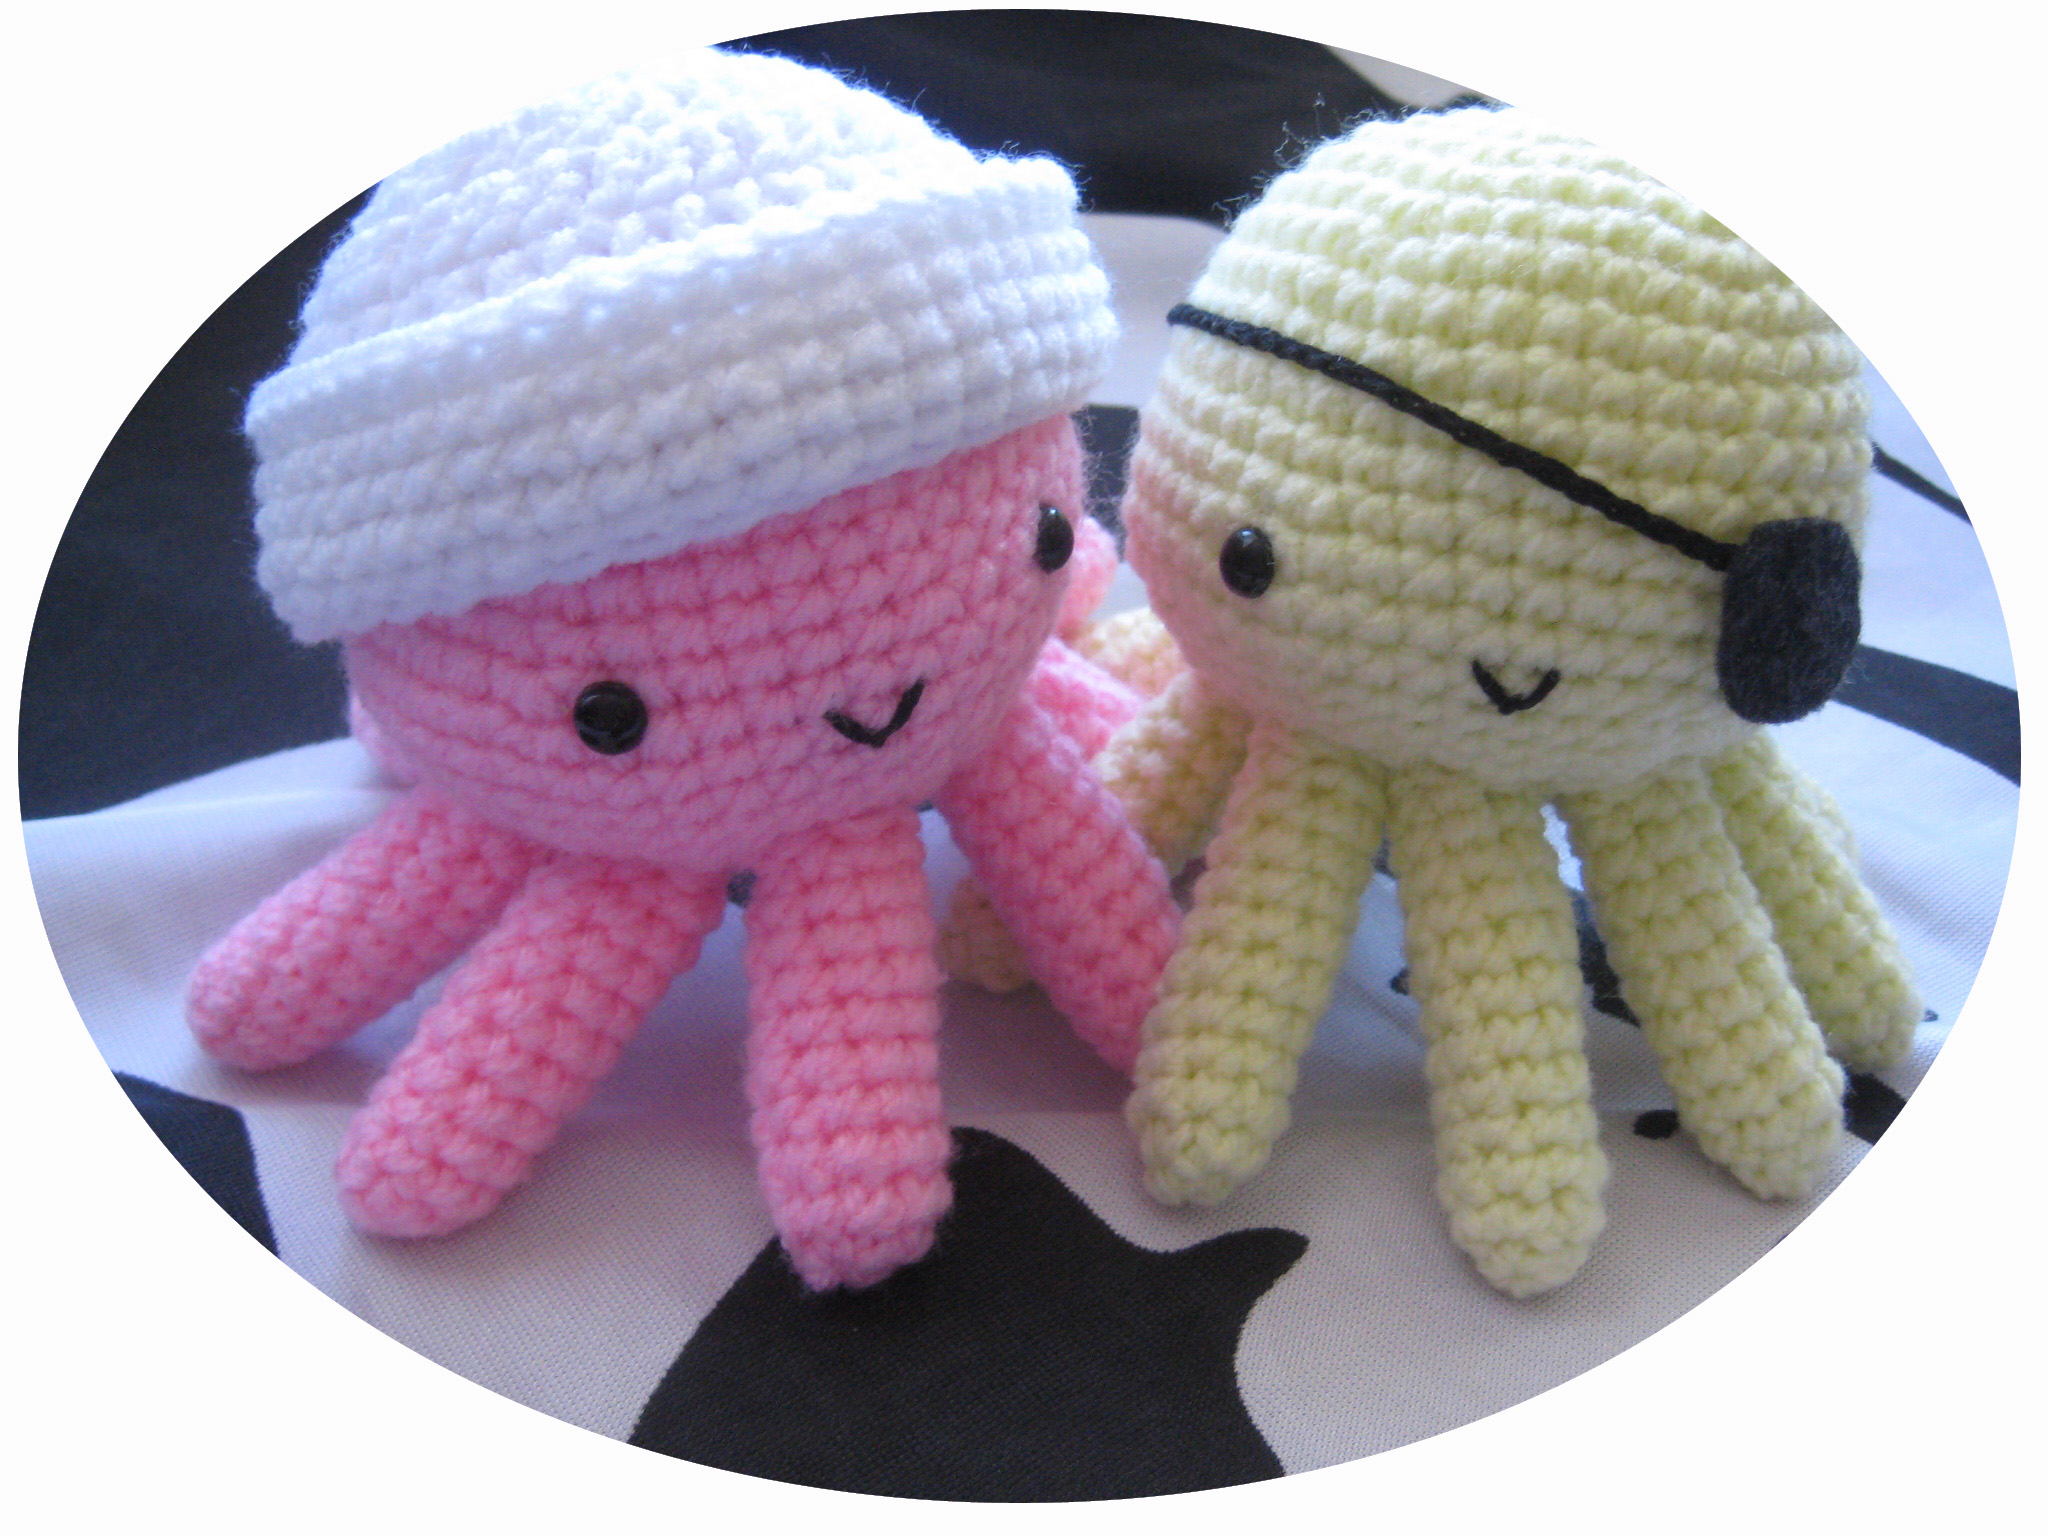 Octopus Pattern Crochet images